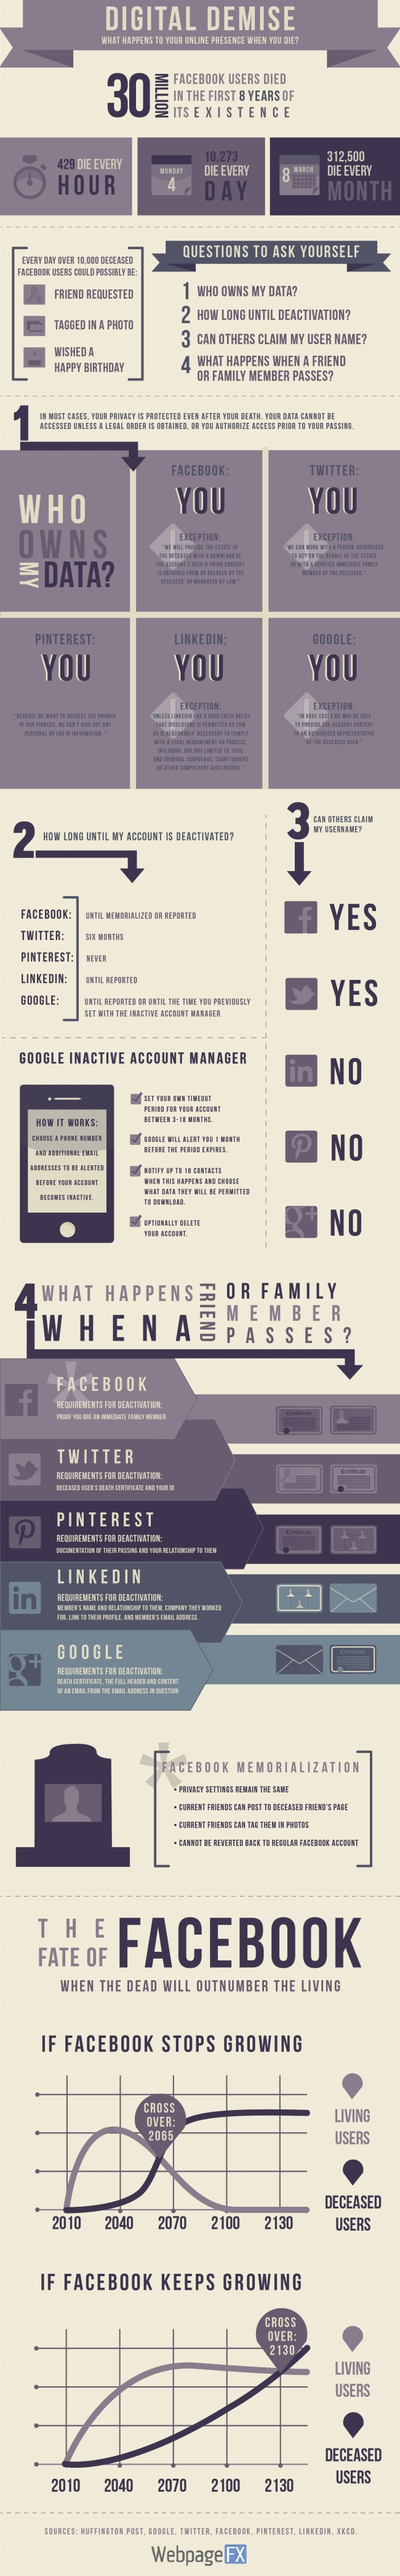 INFOGRAPHIC: R.I.P., Facebook User … Now What? - AllFacebook | via #BornToBeSocial - Pinterest Marketing